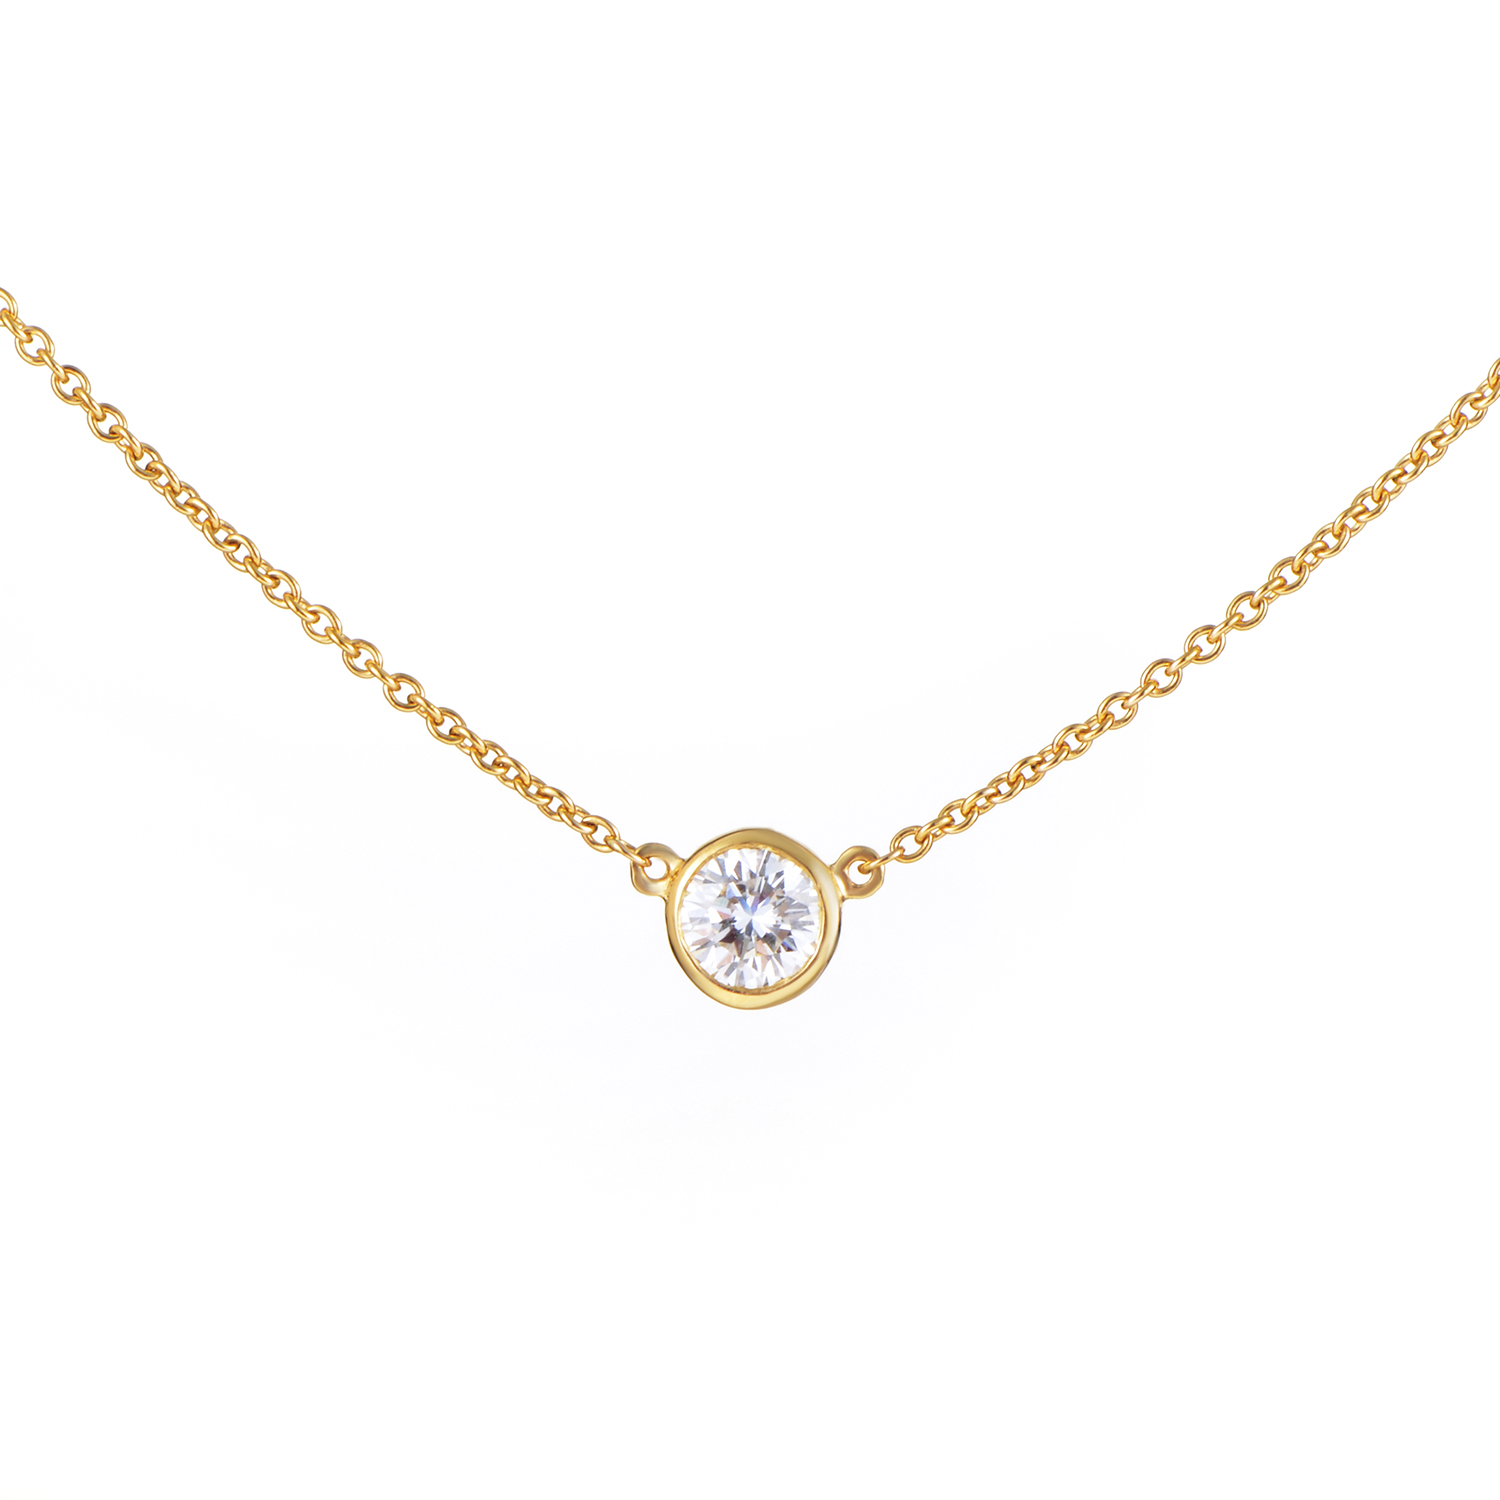 Tiffany & Co. Elsa Peretti Diamonds by the Yard 18K Gold .30ct Solitaire Necklace